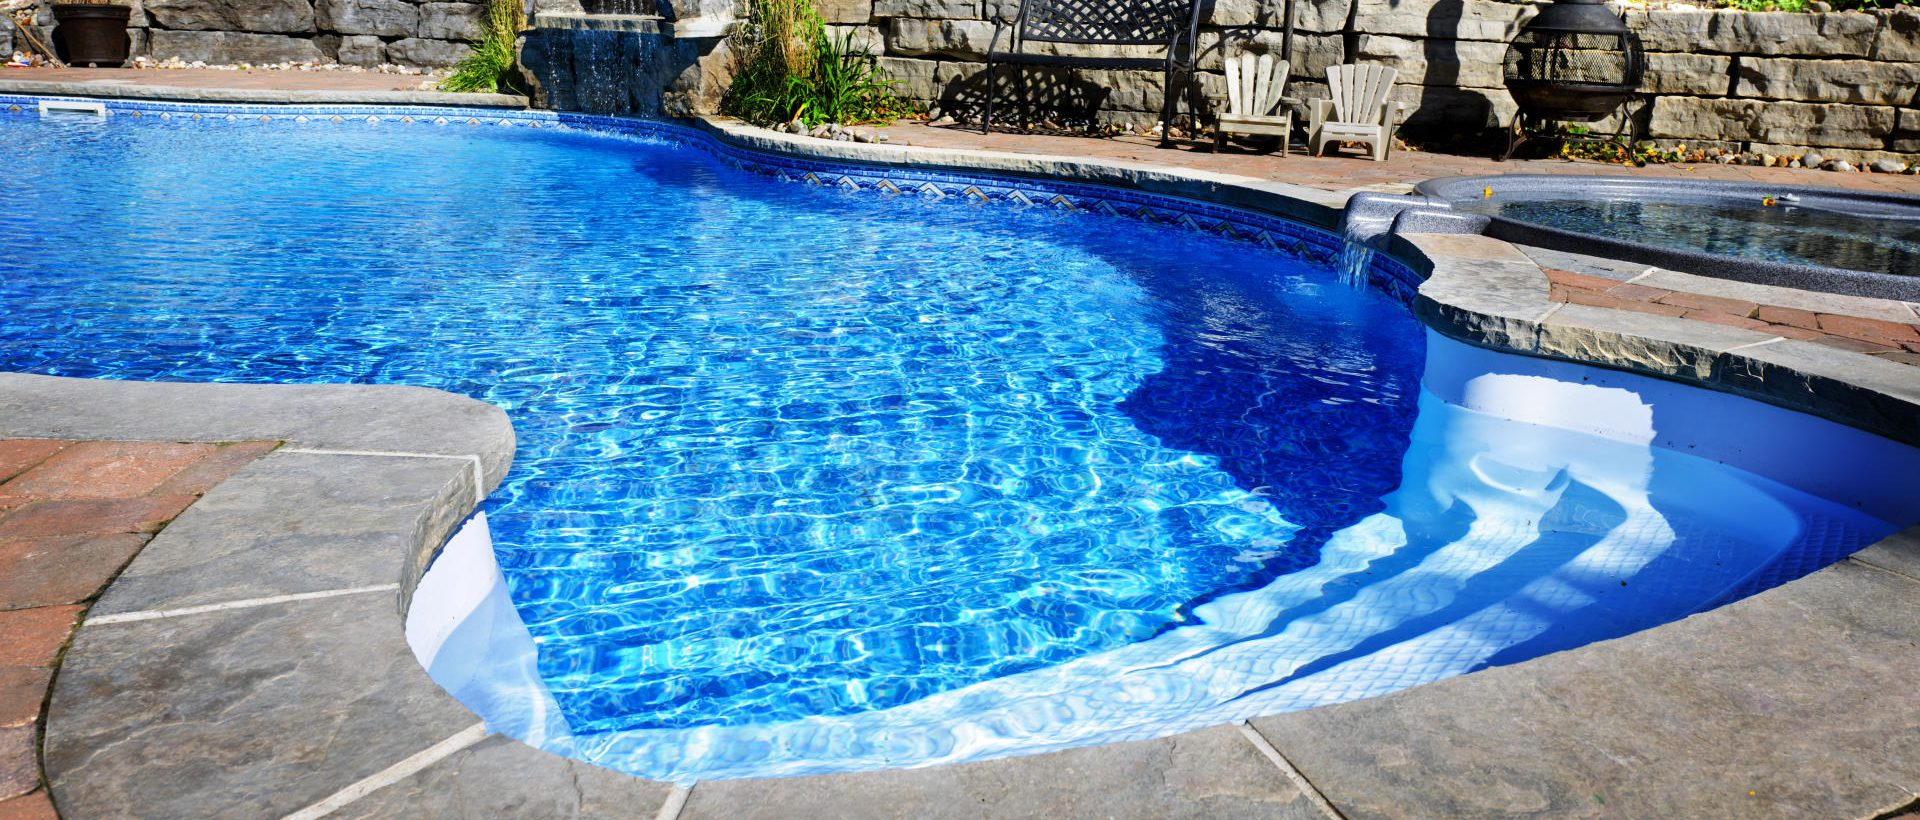 Build the Pool of your Dreams